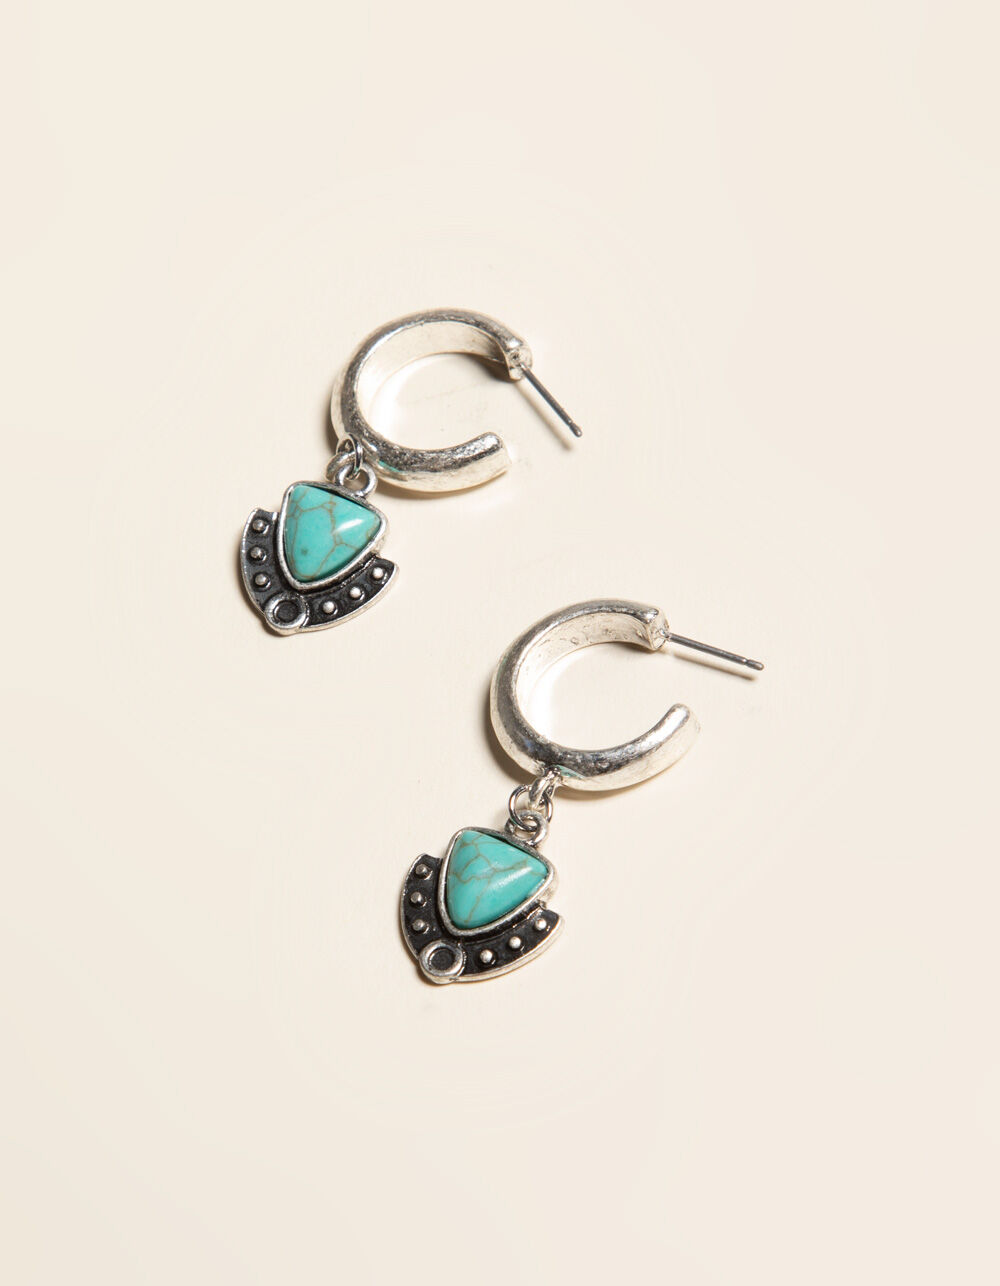 WEST OF MELROSE Turquoise Antique Earrings